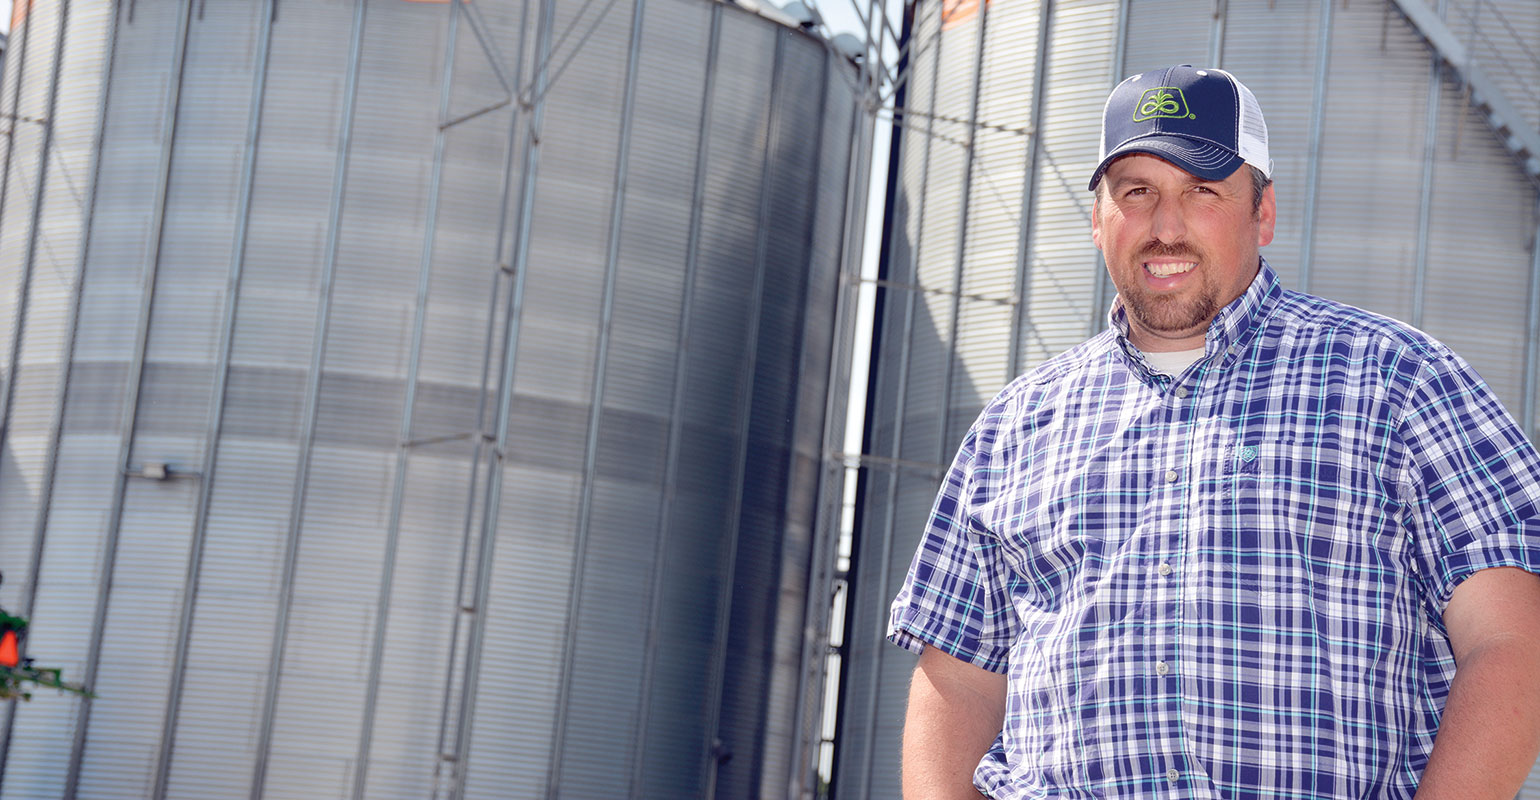 DFP-Ron-Smith-On-Farm-Storage.jpg